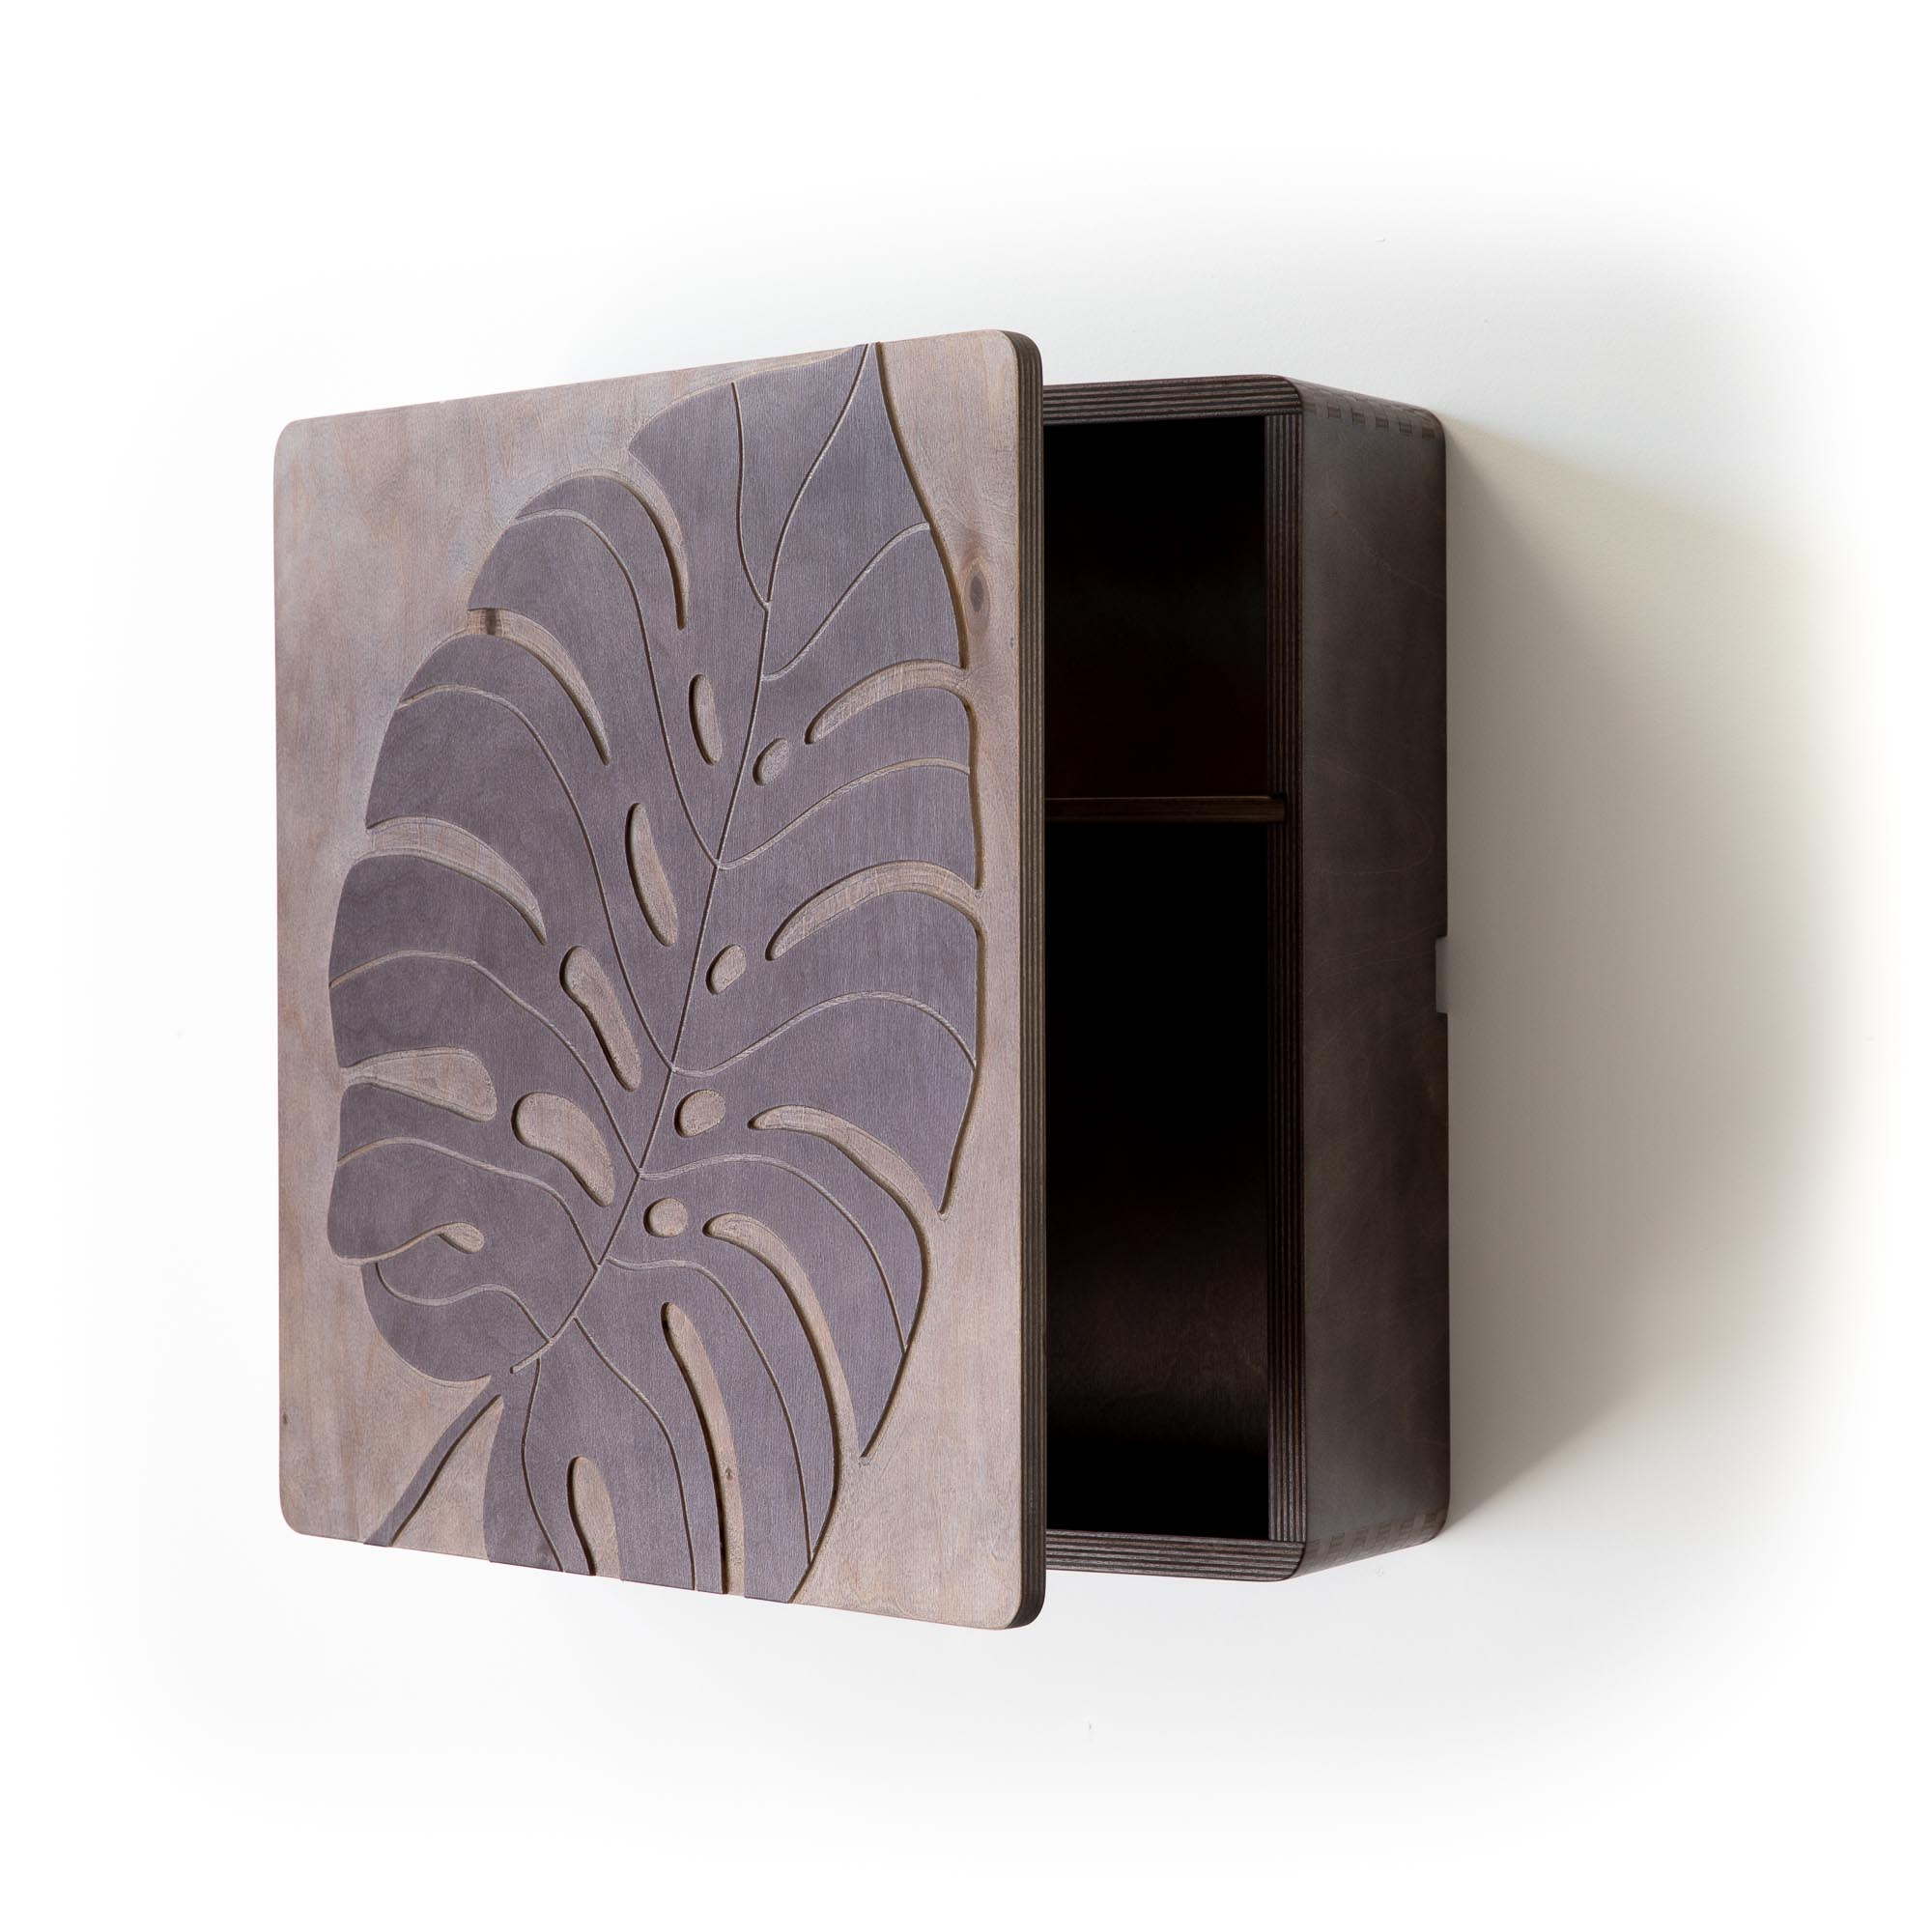 Wall mounted low profile storage cabinet